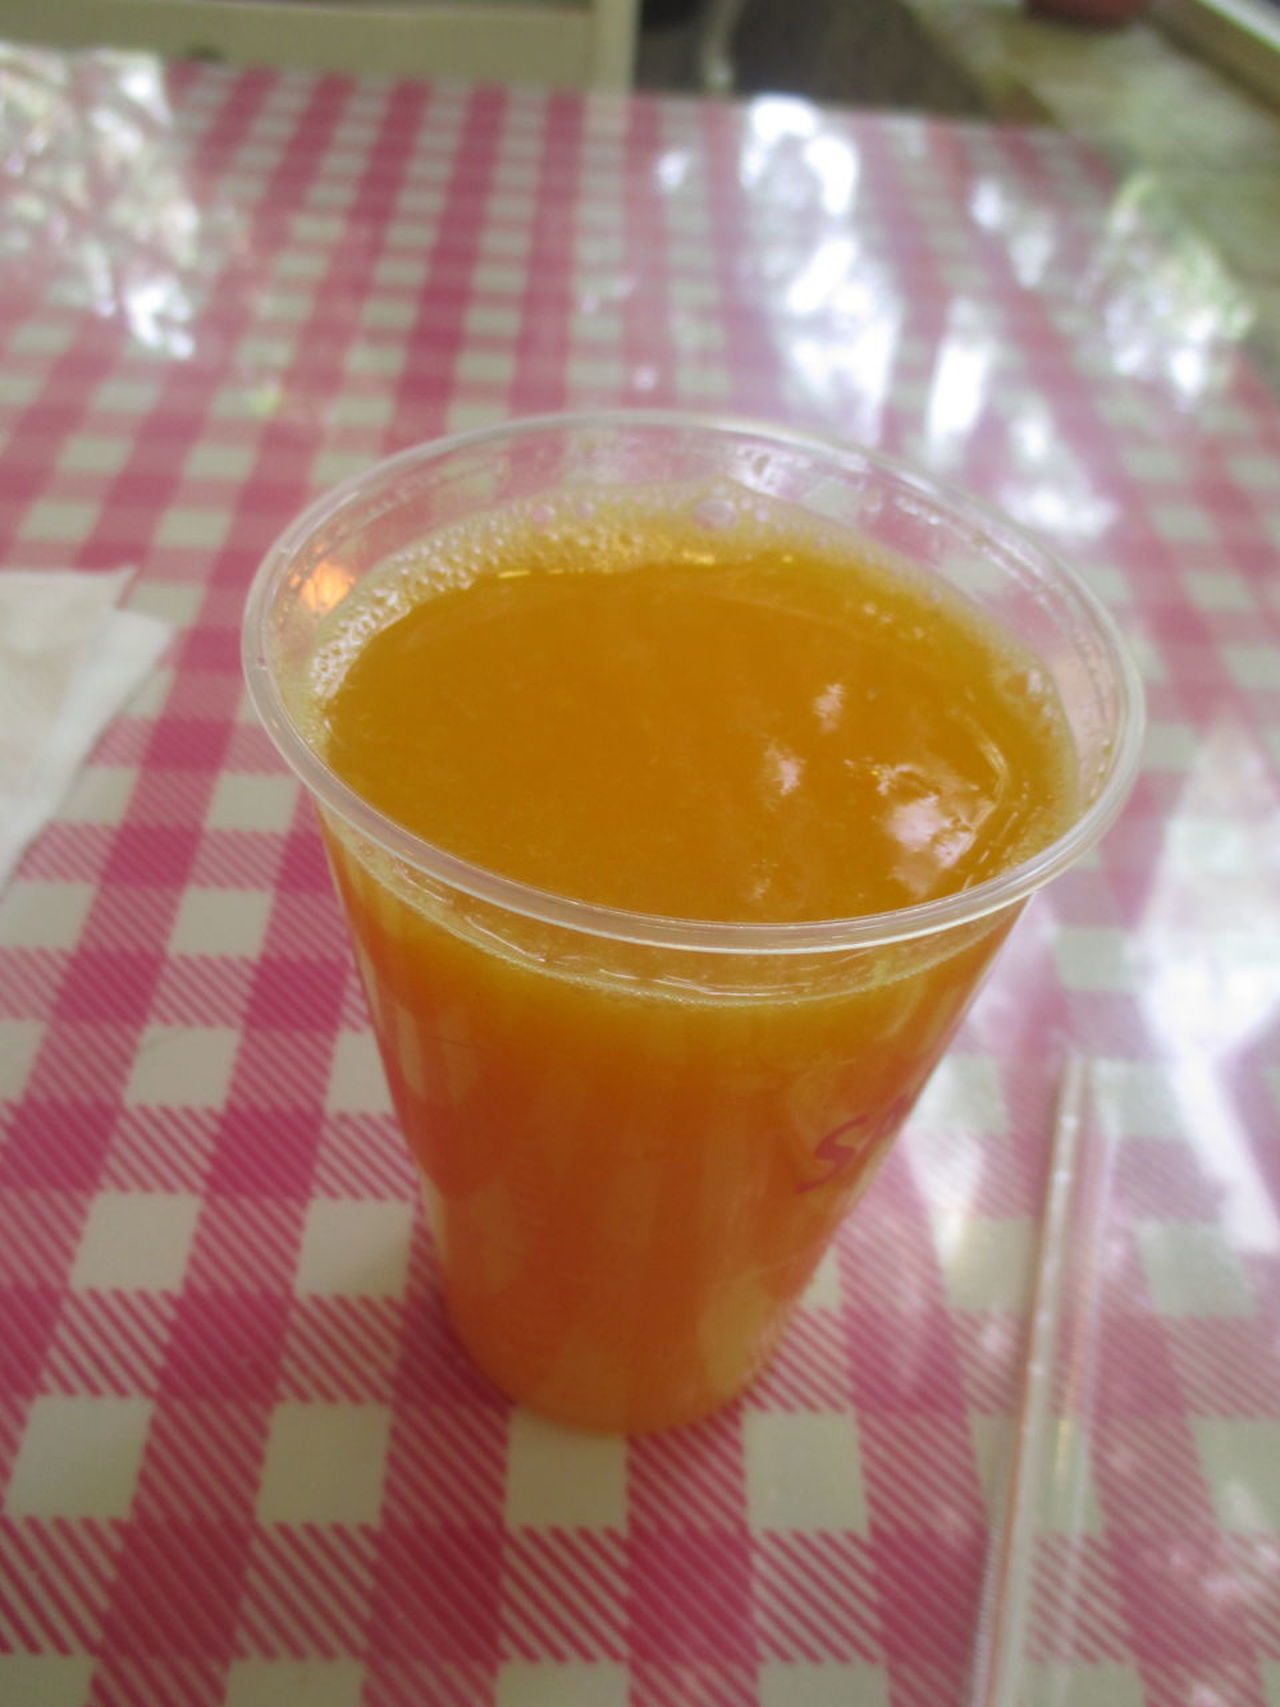 Cafe Table With Rustic Motifs Close-up Day Delicious Drink Drinking Glass Food Food And Drink Fresh Orange Juice Freshness Freshness Fruit Healthy Eating Ice Tea Indoors  No People Orange Juice  Ornge Juice Pleasure Portuguese Orange Juice Refreshment Squeezed Orange Juice Table Tasty Thirst